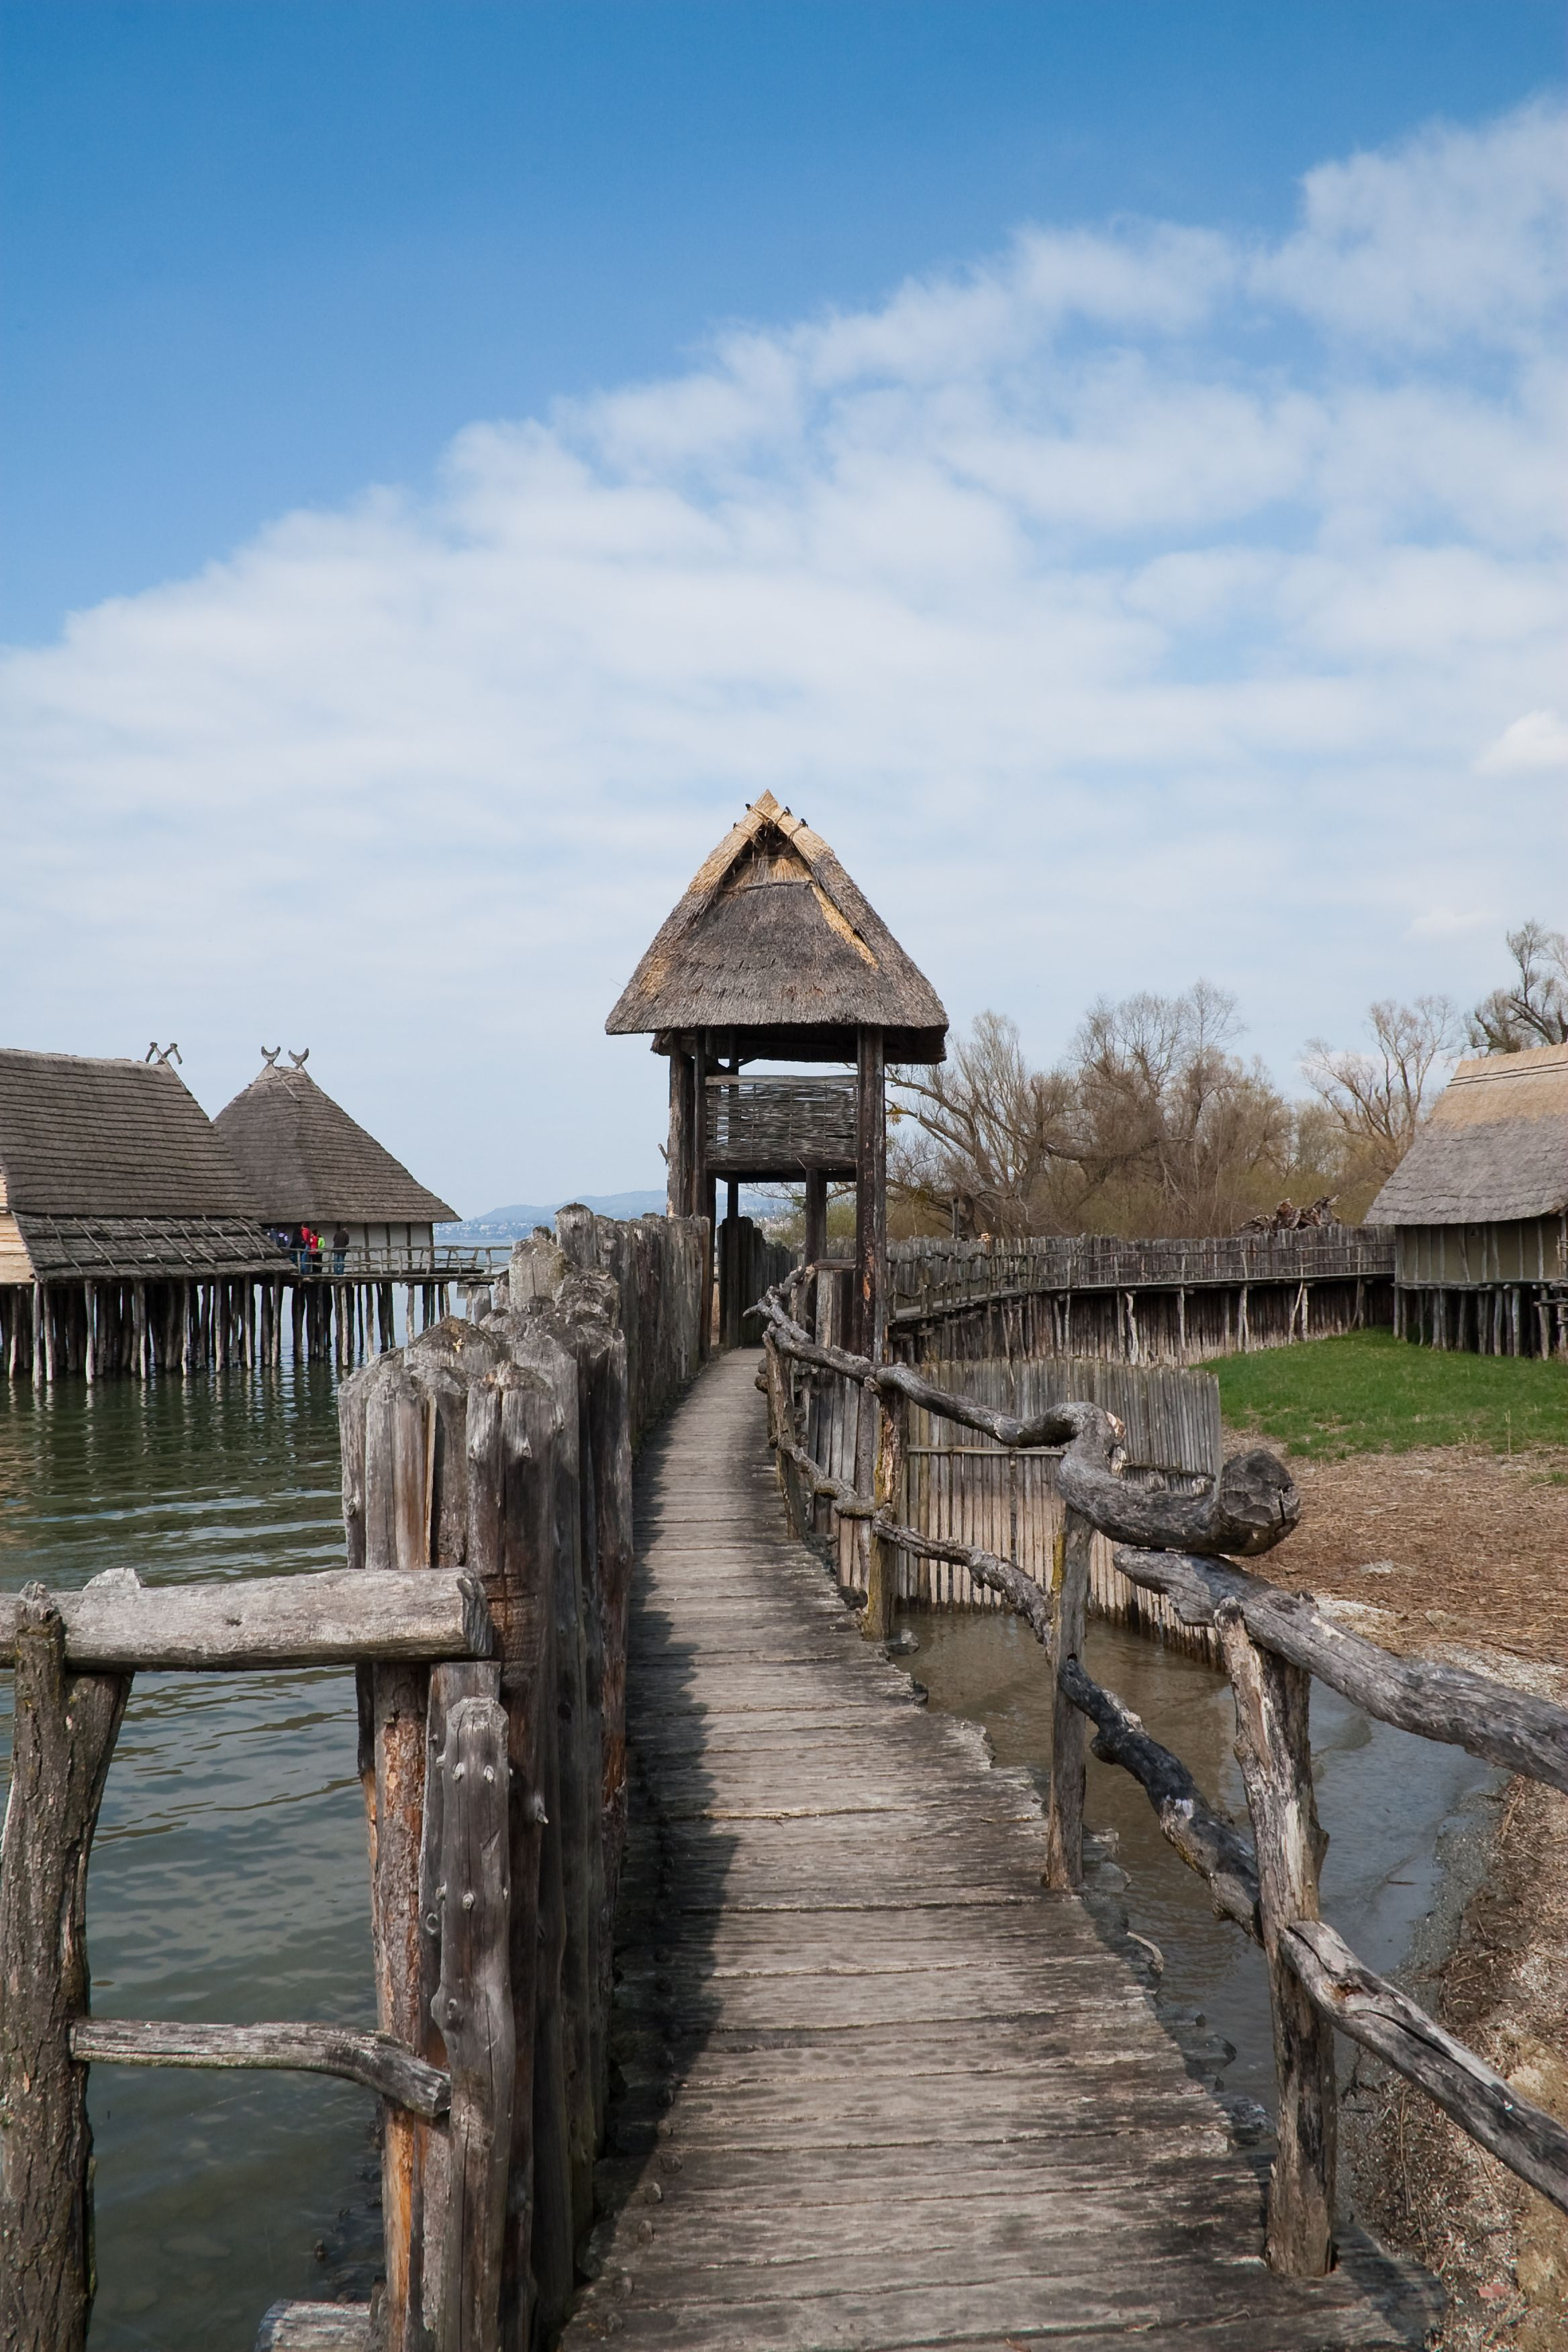 A Reconstruction Of A Neolithic Age Fortified Village